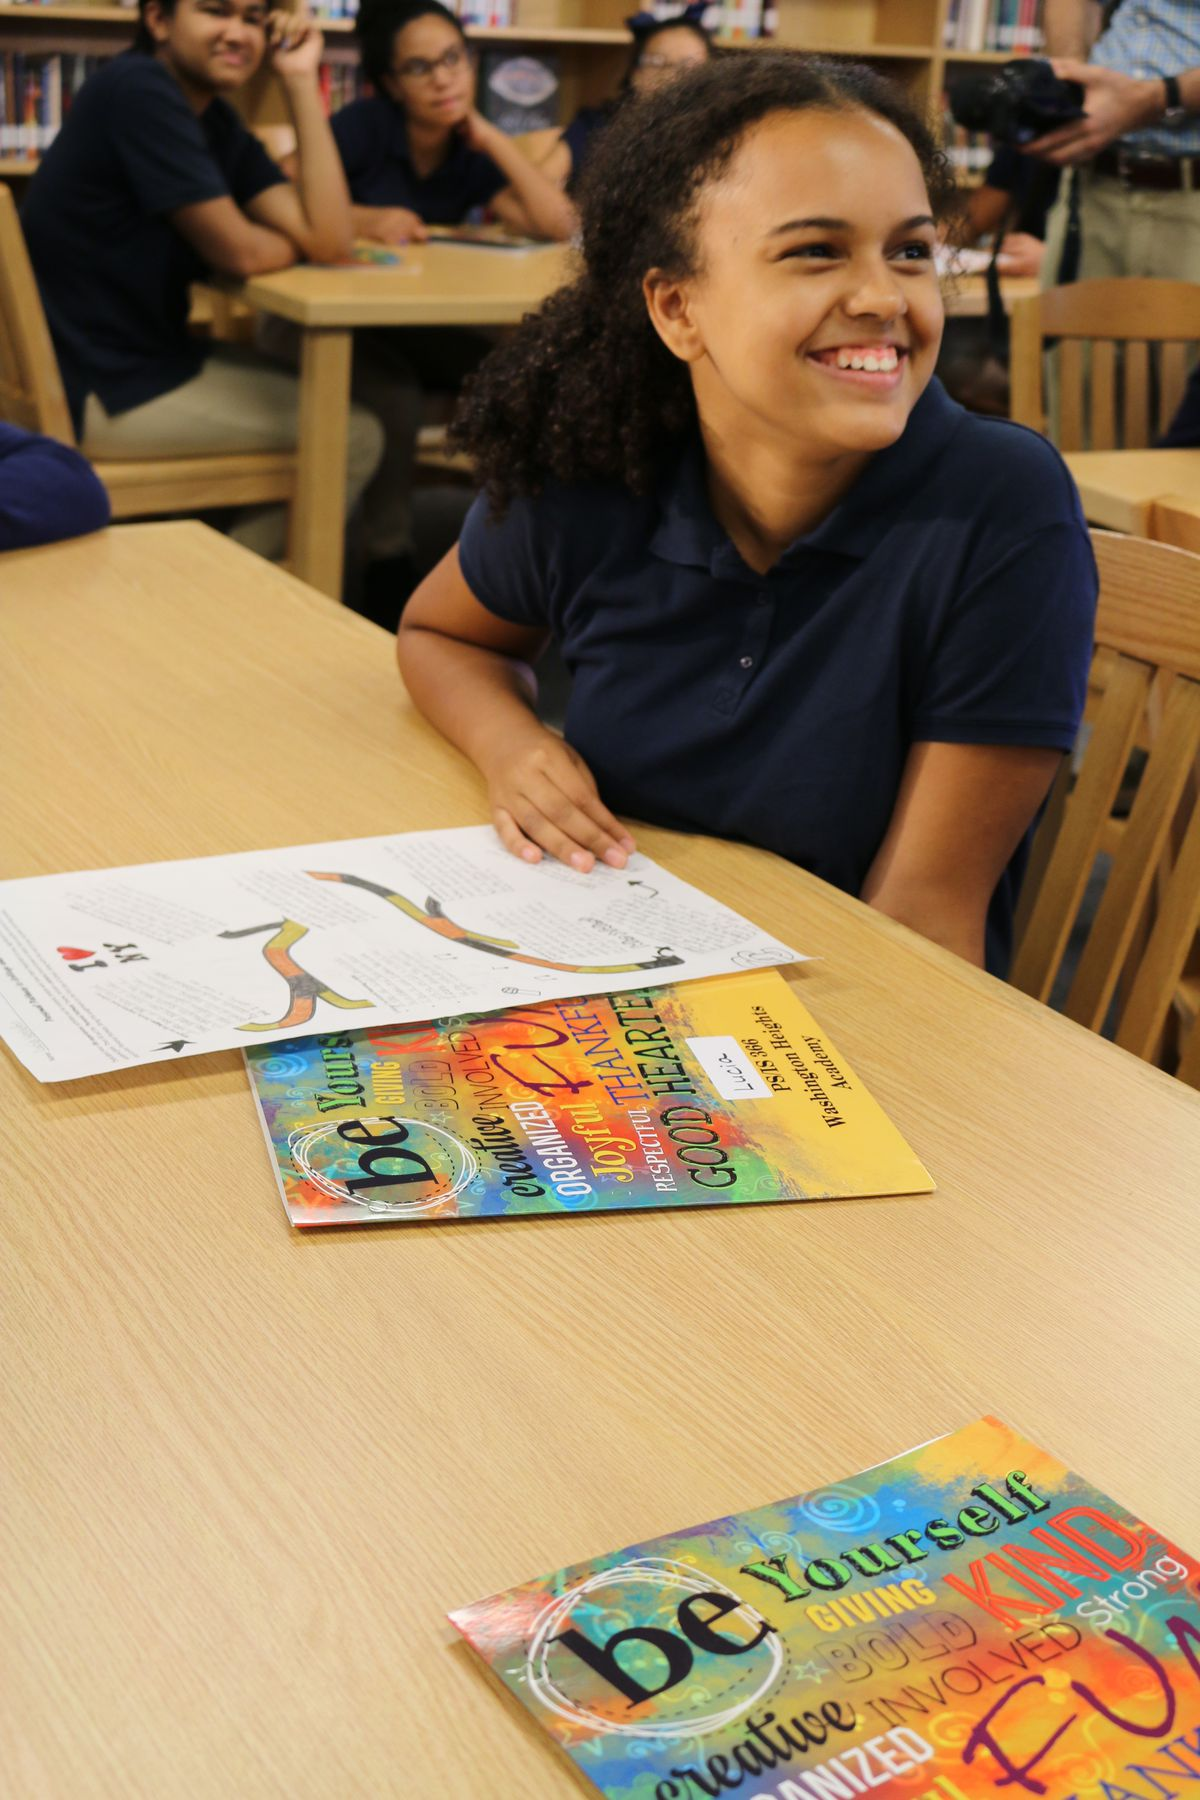 Lucia Herndon, a seventh grade student at Washington Heights Academy M.S. 366, talks about her college plans.